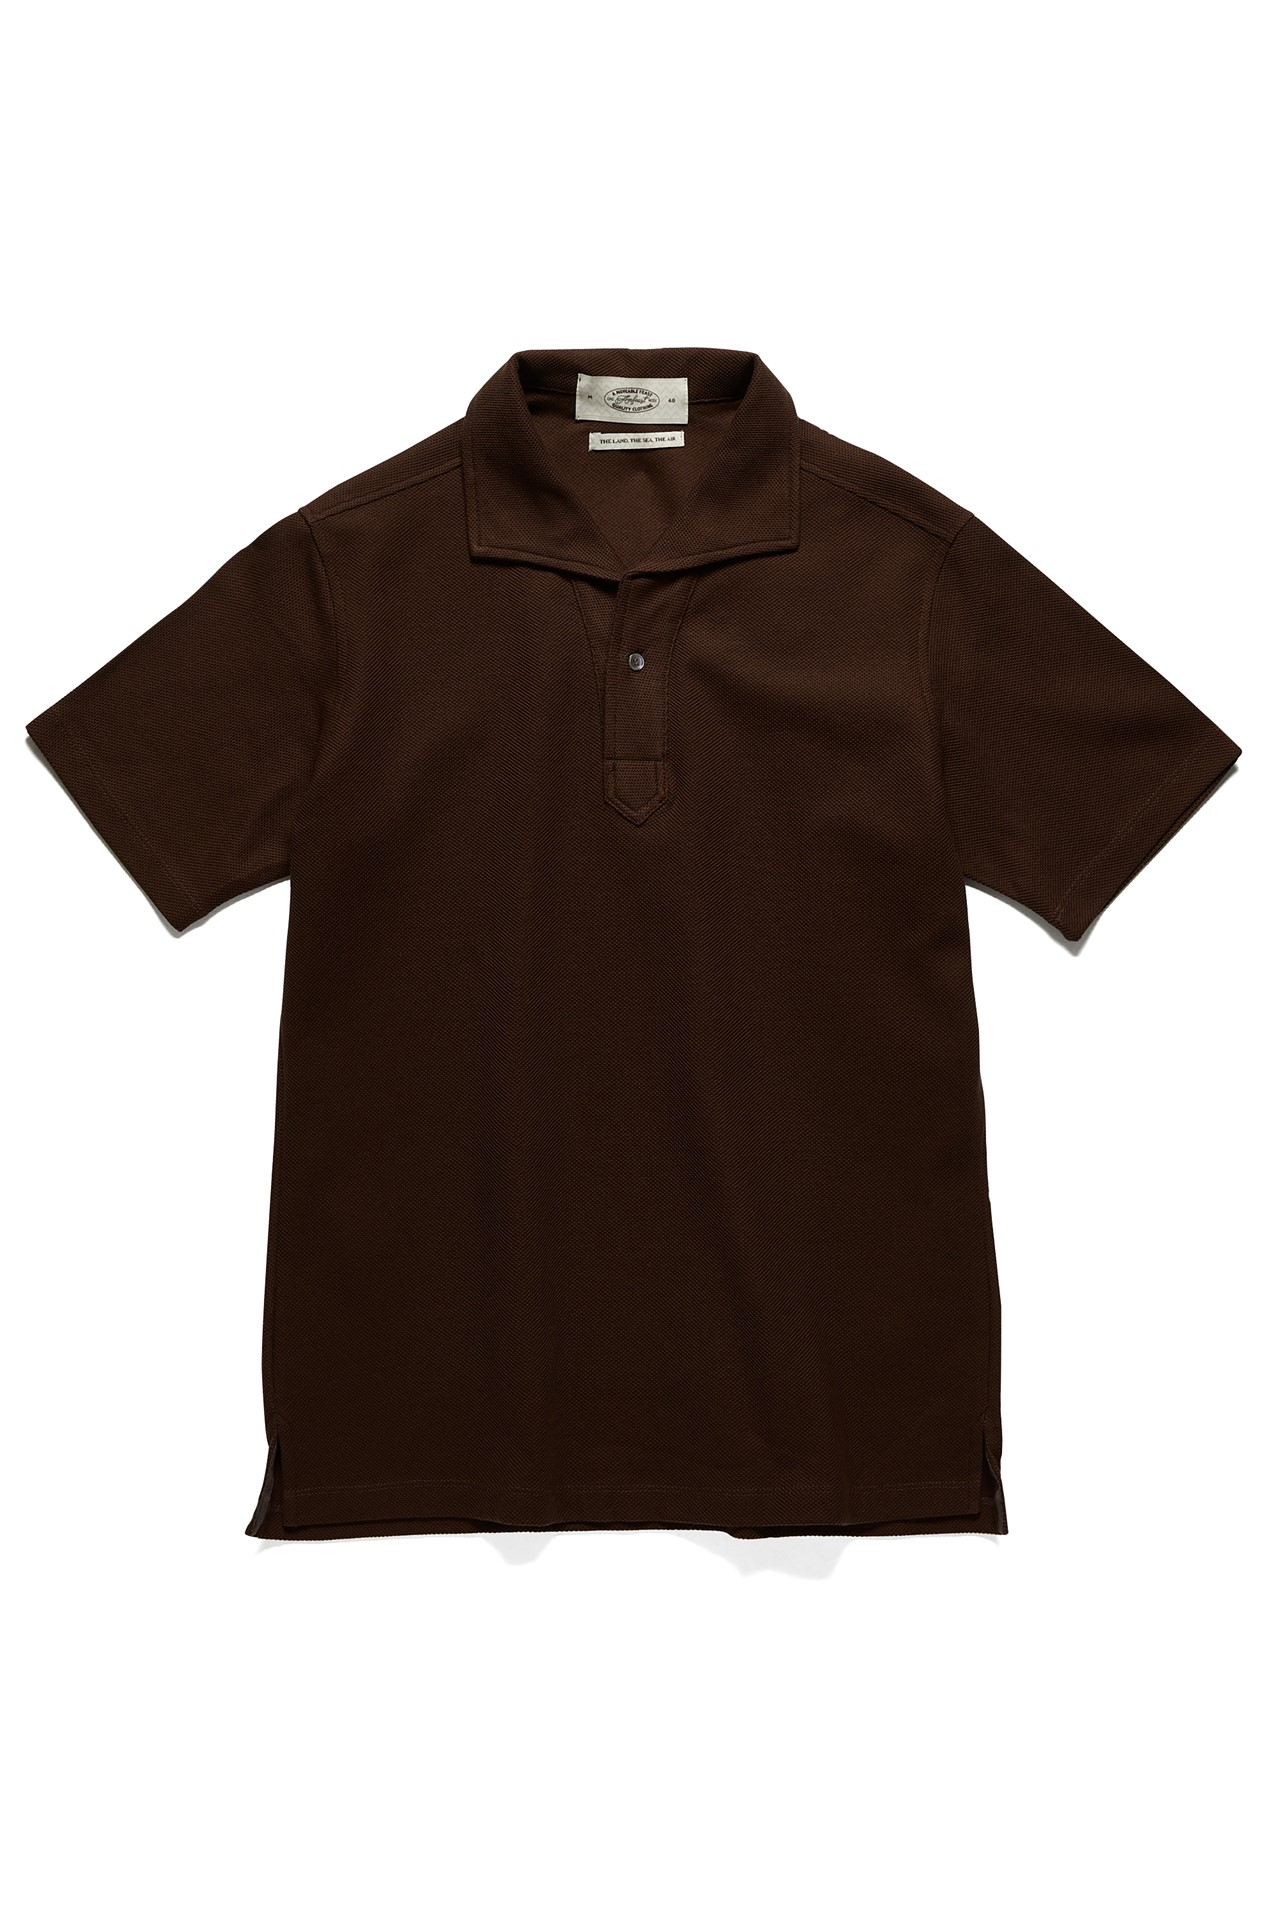 BROWN SIGNATURE ONEPIECE COLLAR POLOAmfeast(암피스트)